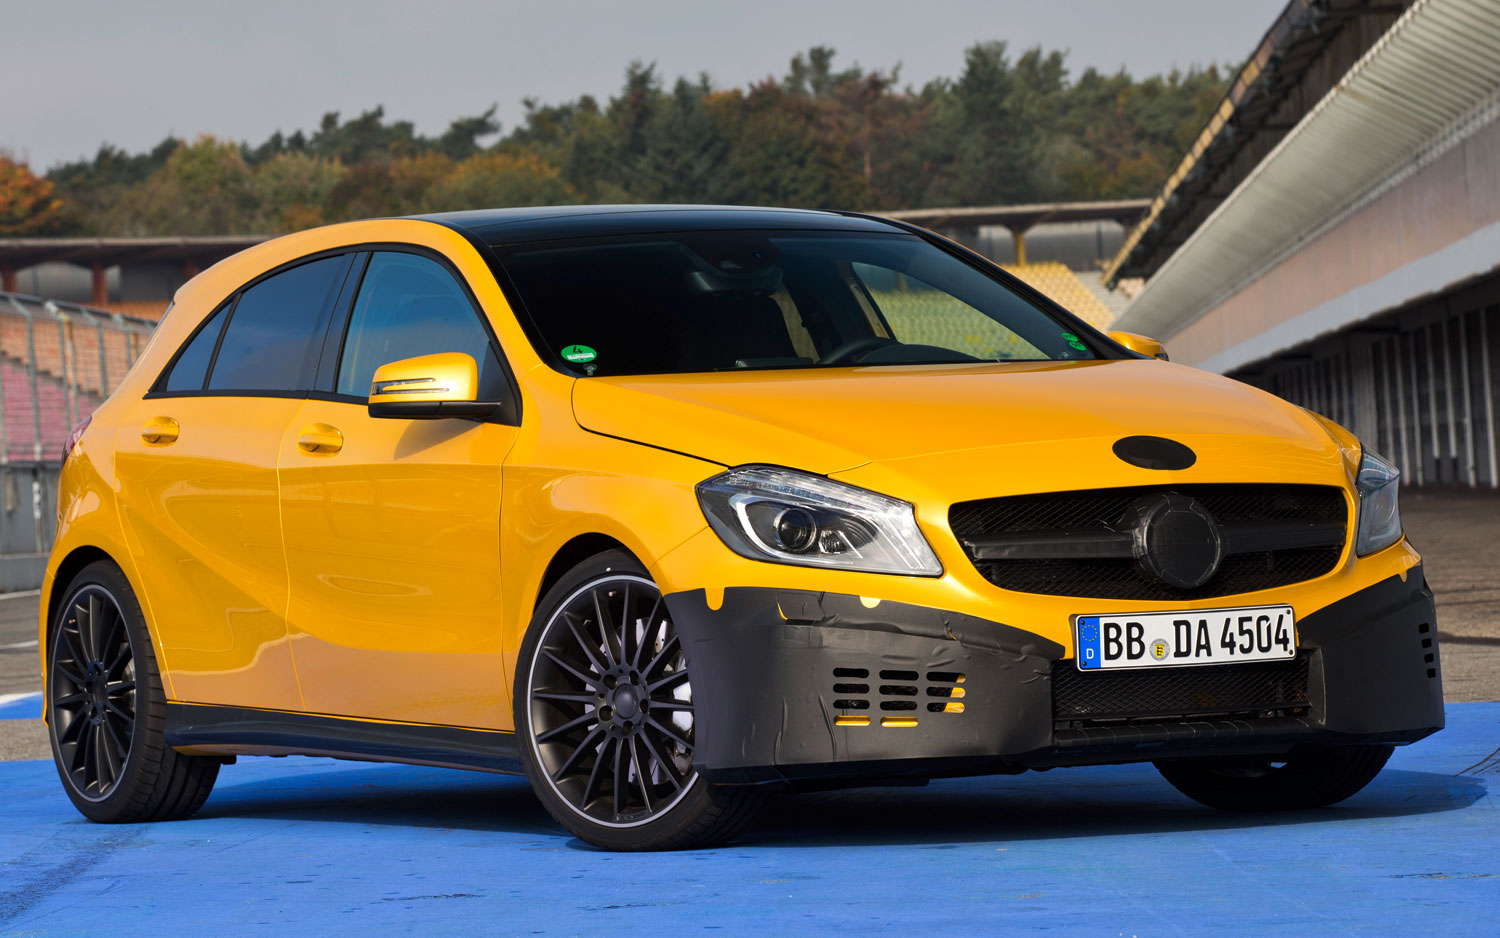 Mercedes Benz A45 AMG Yellow Test Mule Front Three Quarter1